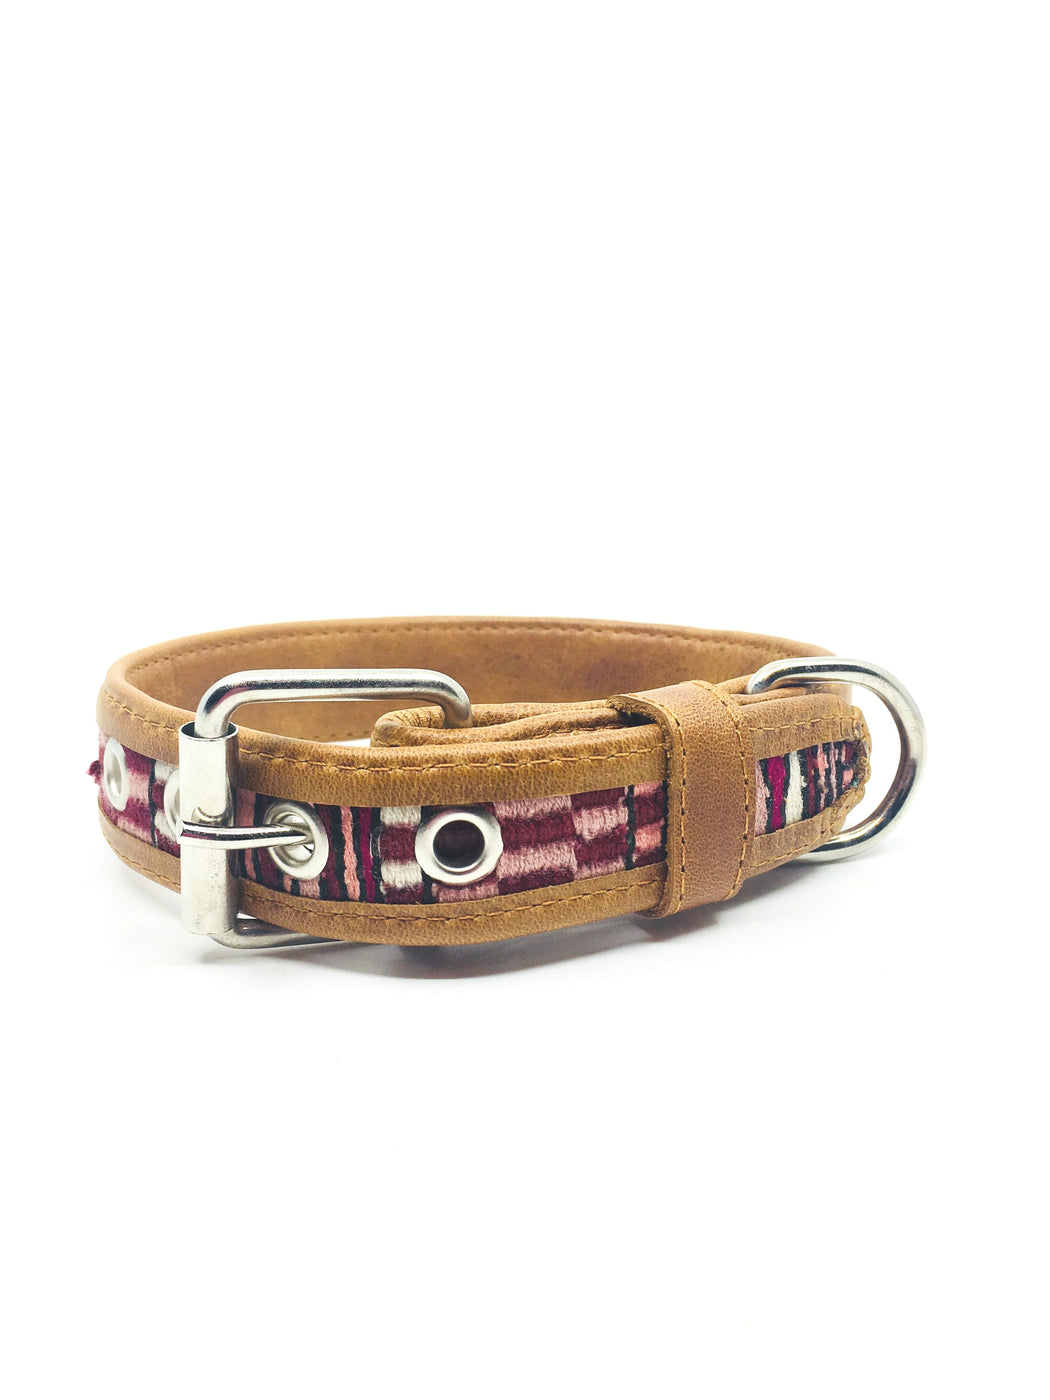 Large Burgundy and Brown Geometric Leather Dog Collar